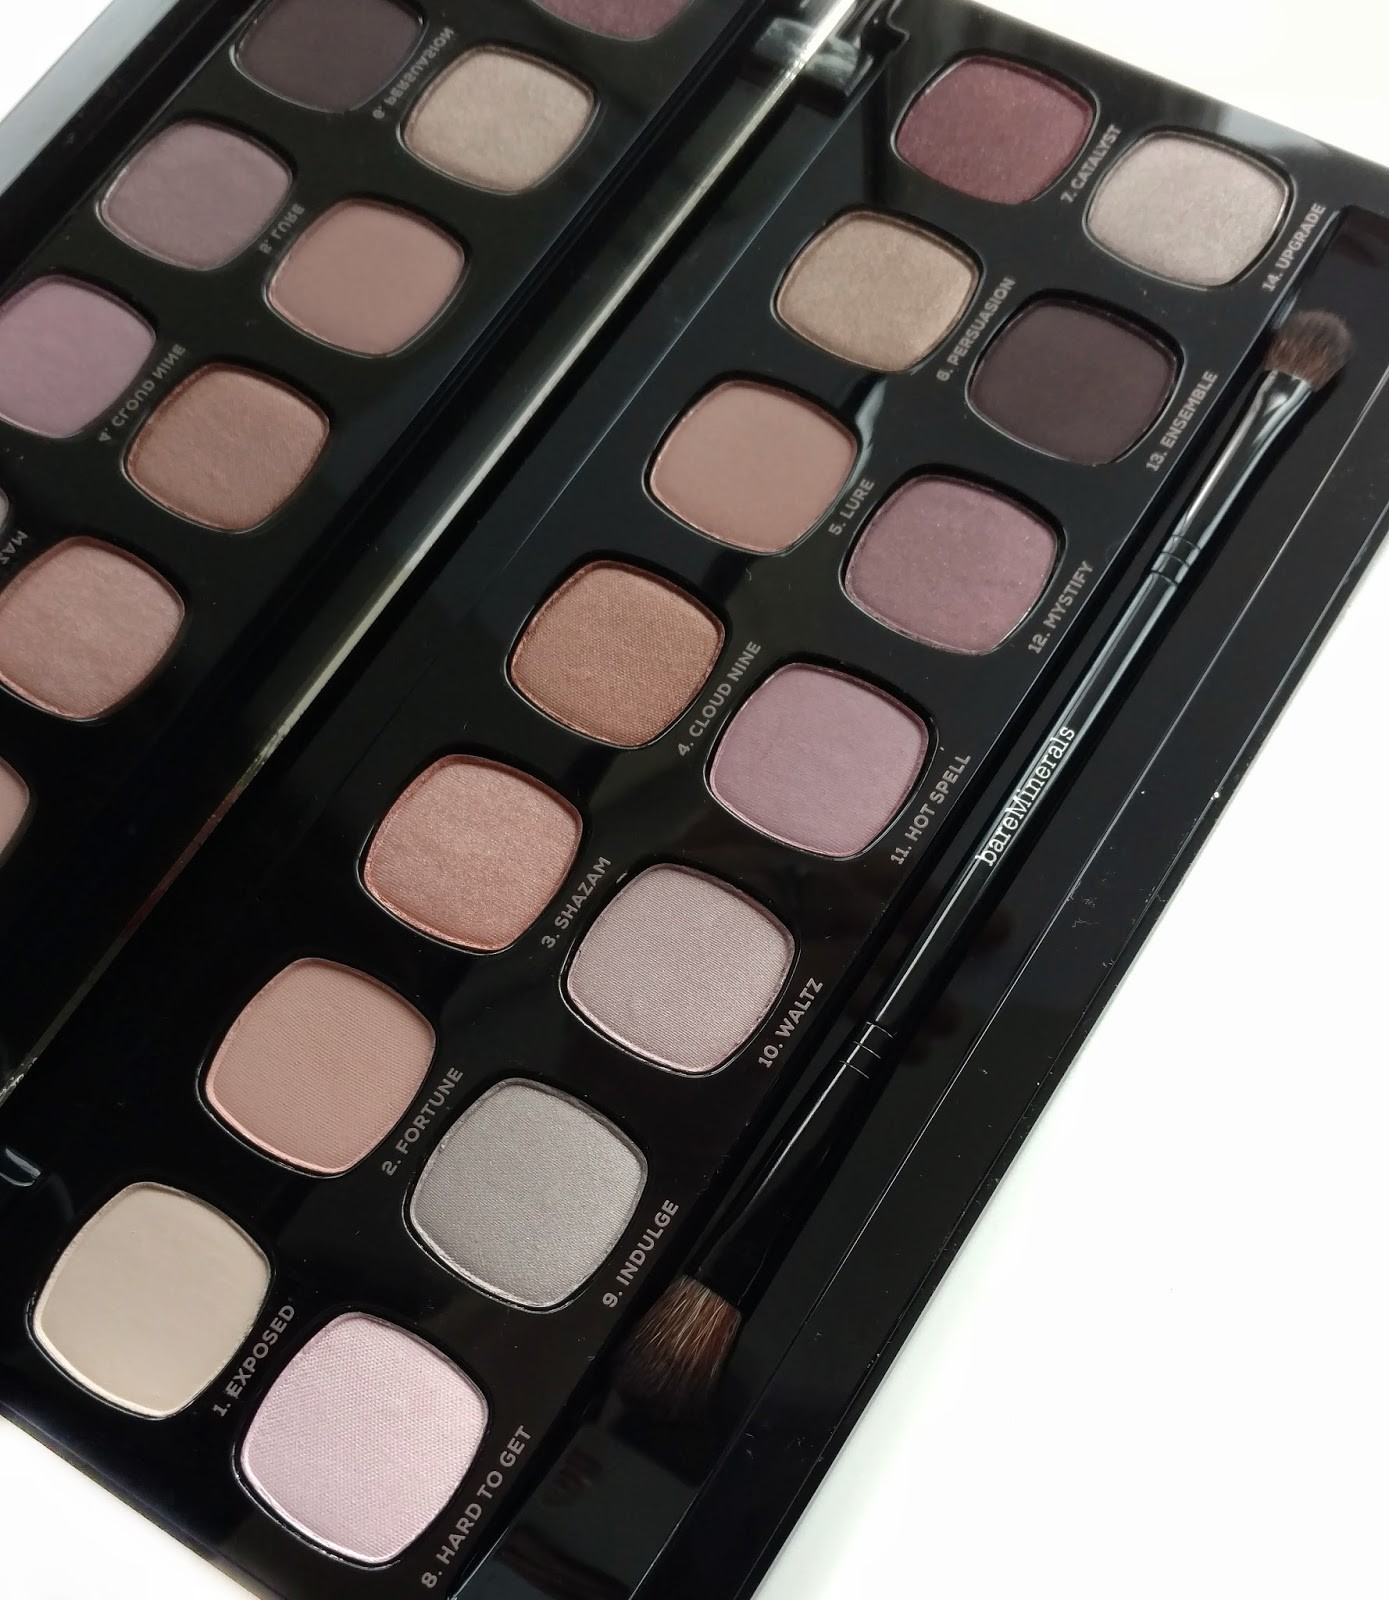 bareMinerals Bare Sensuals eyeshadow palette